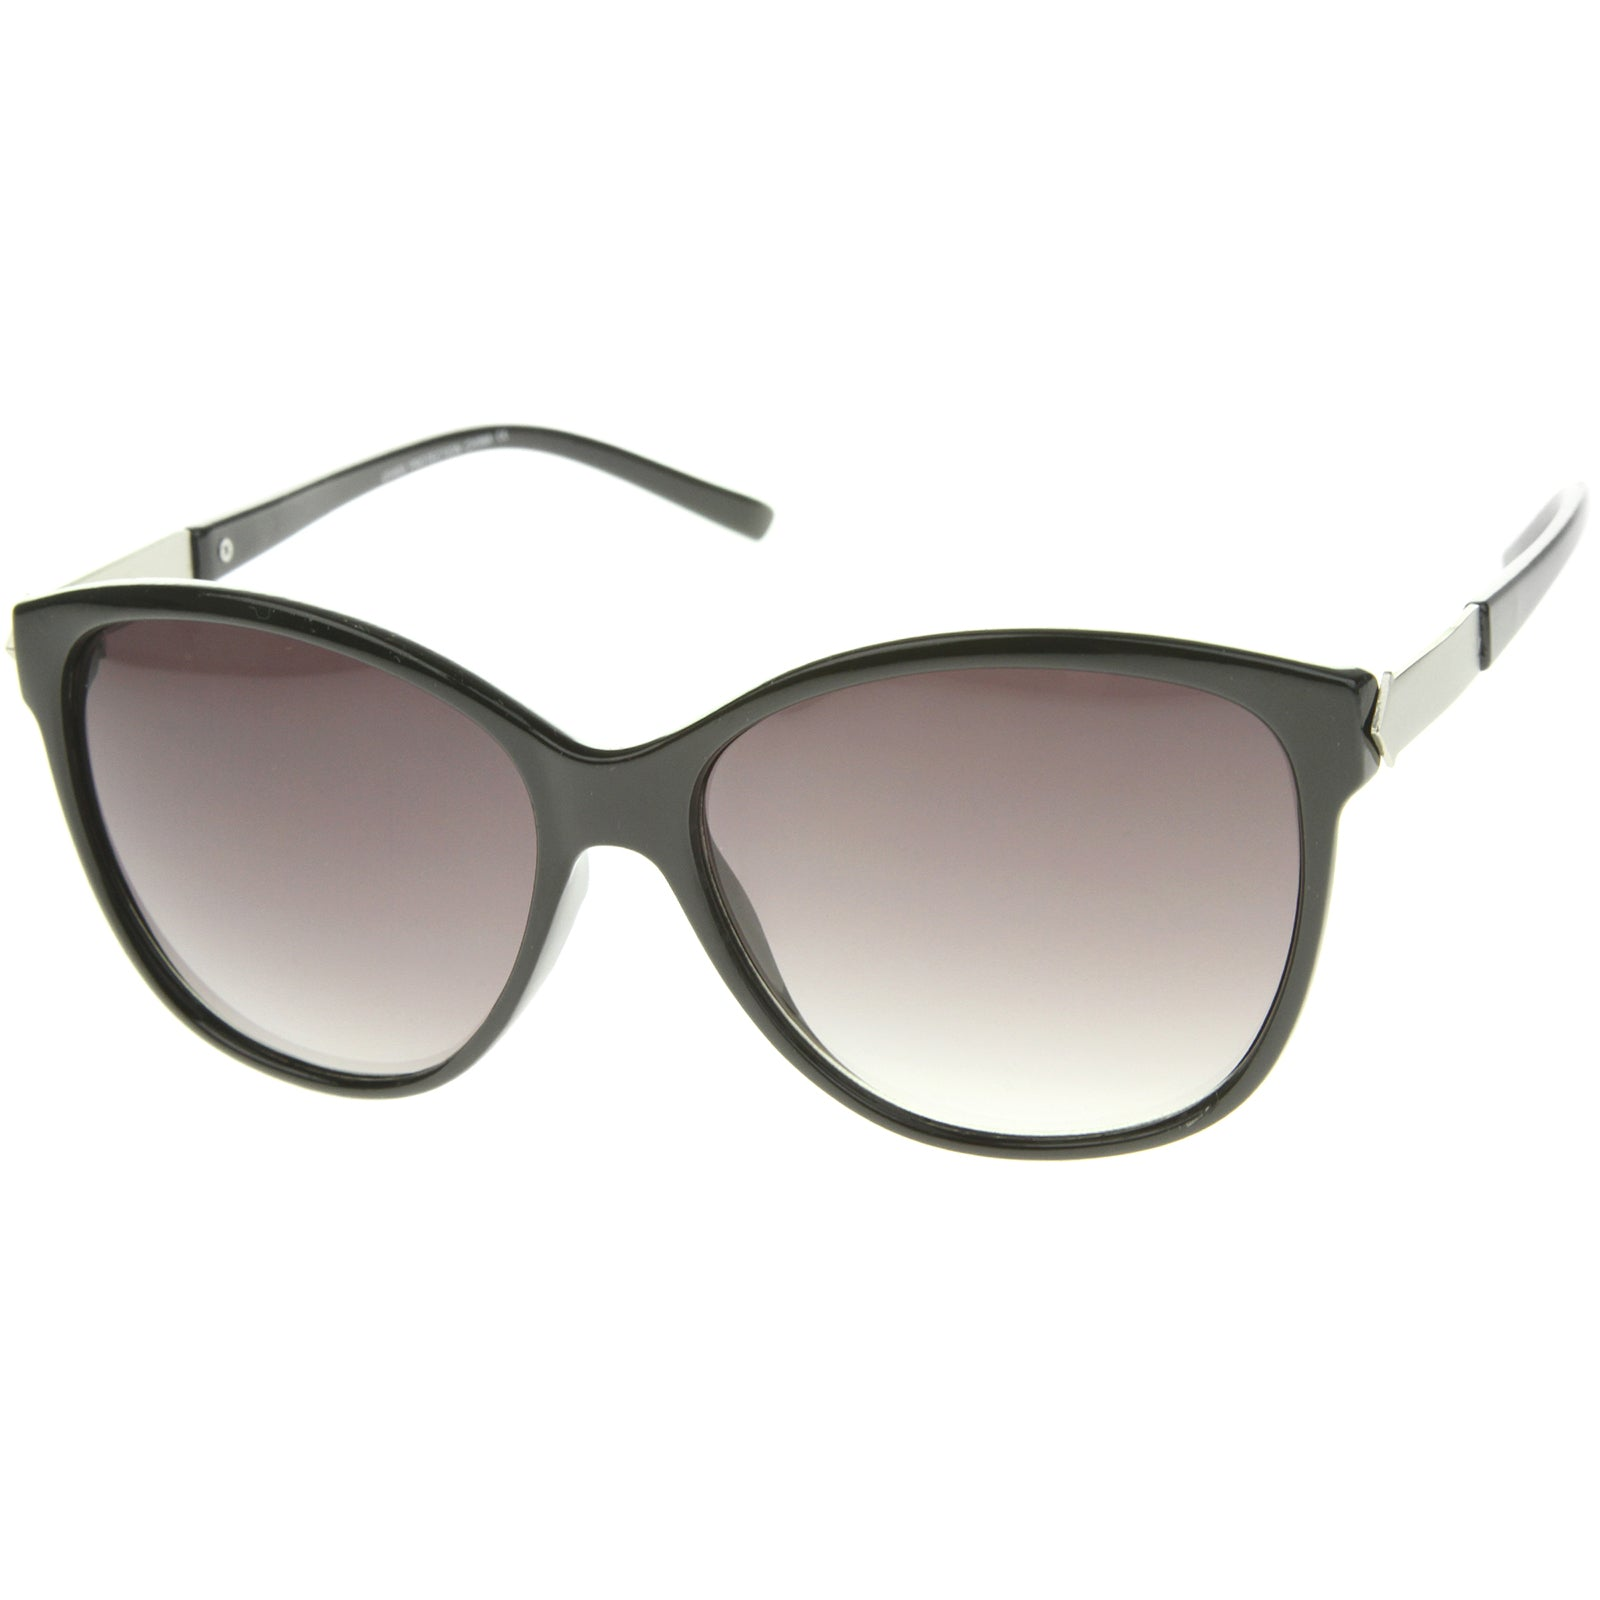 Women's Glam Fashion Metal Temple Oversize Cat Eye Sunglasses 59mm - sunglass.la - 6